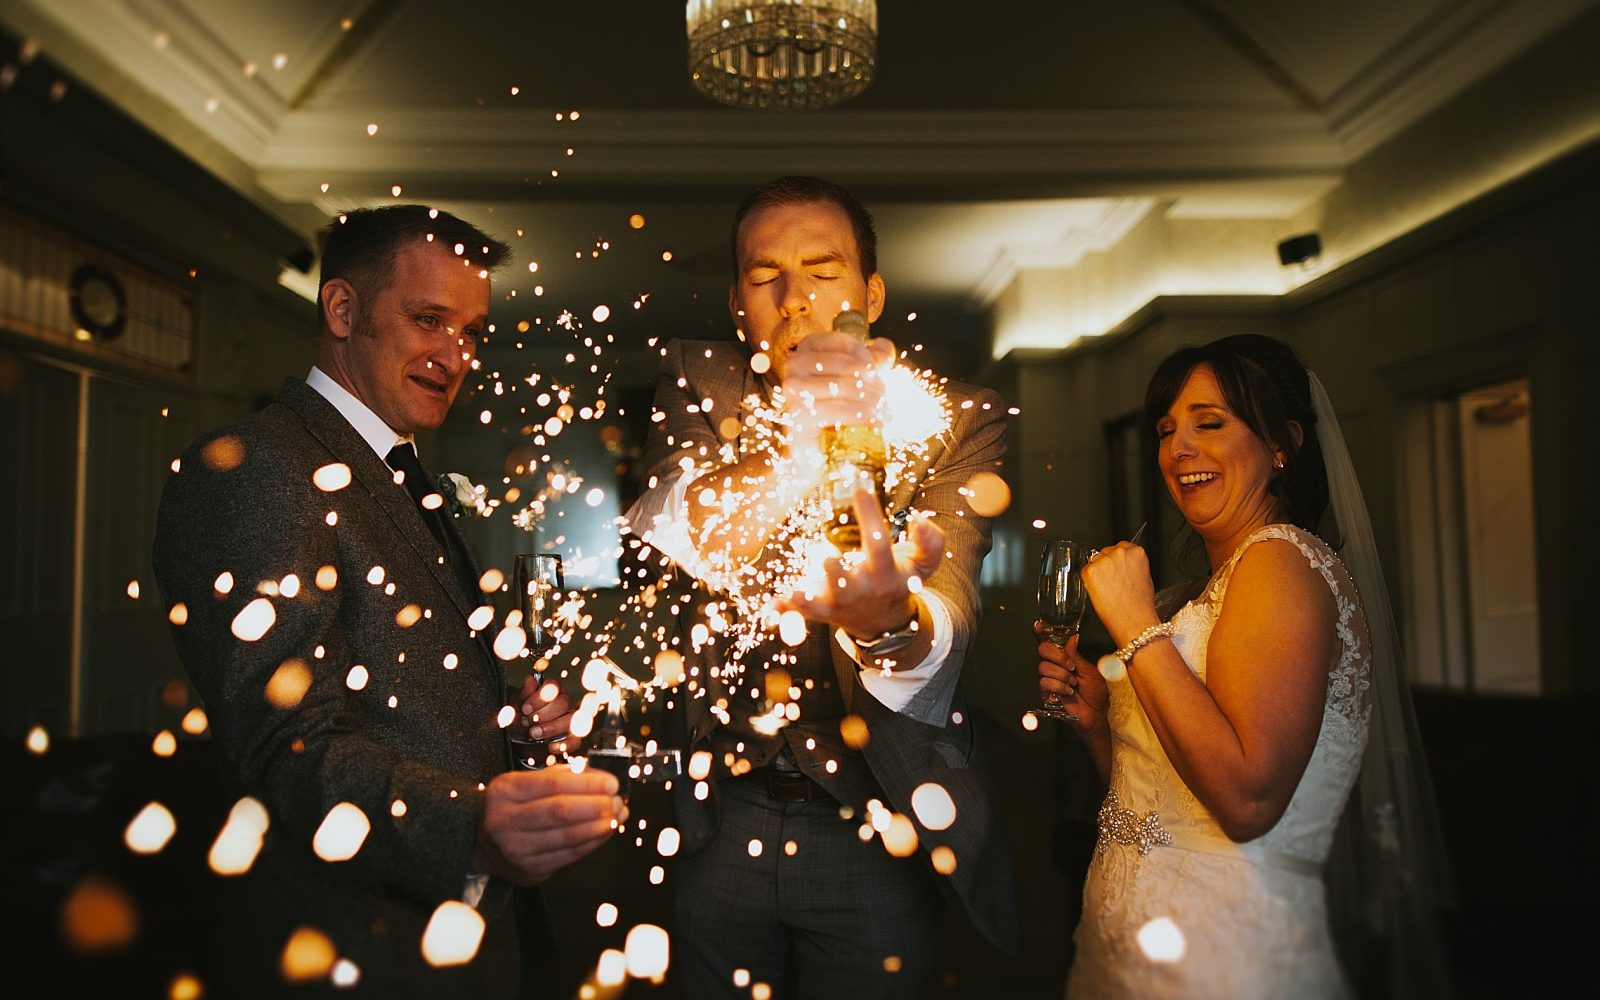 Ahfield-House-Wedding-Venue-Photography-Photographer-Wigan-embee-Photography-Matt-Burgess_0170